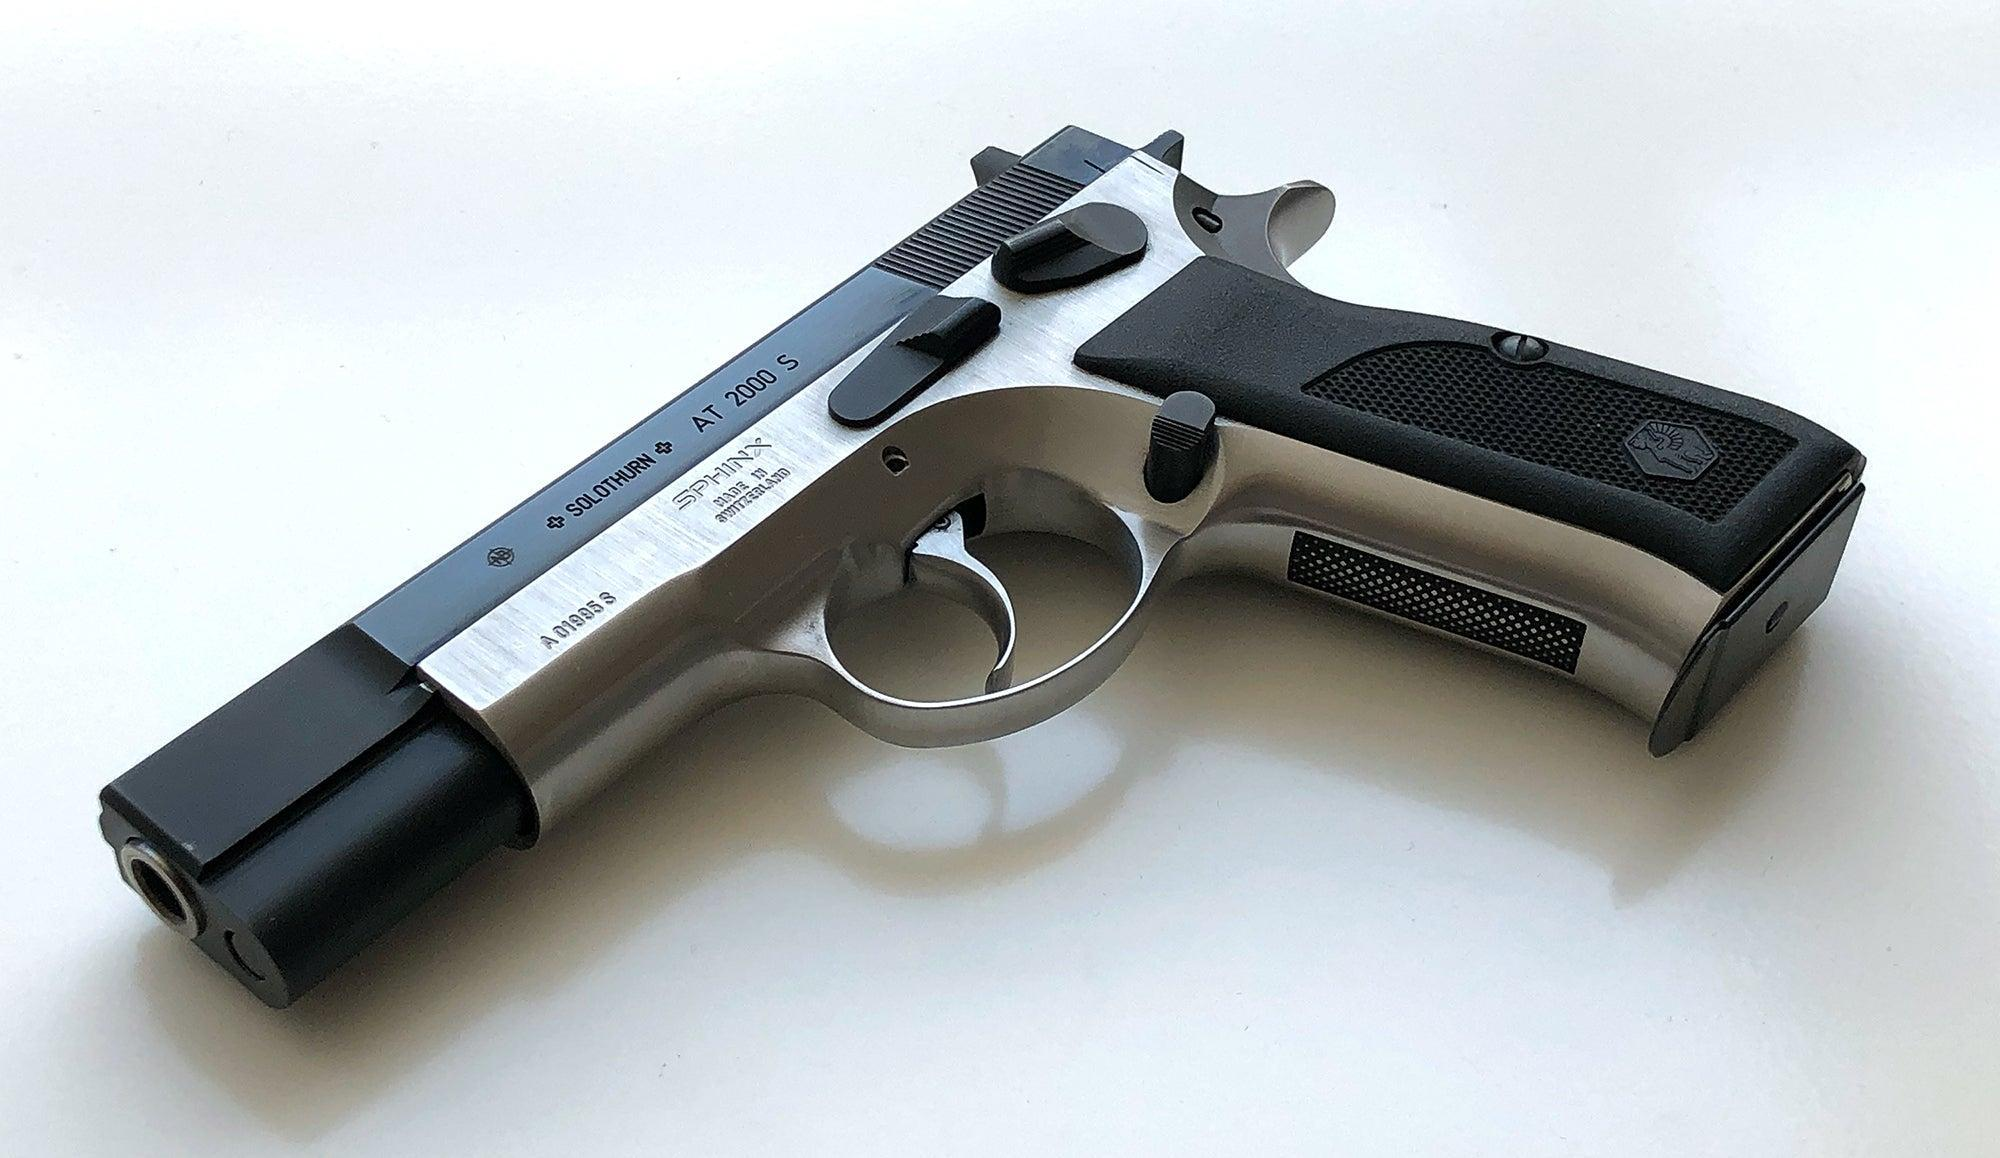 Swiss-made Sphinx AT-2000S, an improved version of the Czech CZ 75 service pistol